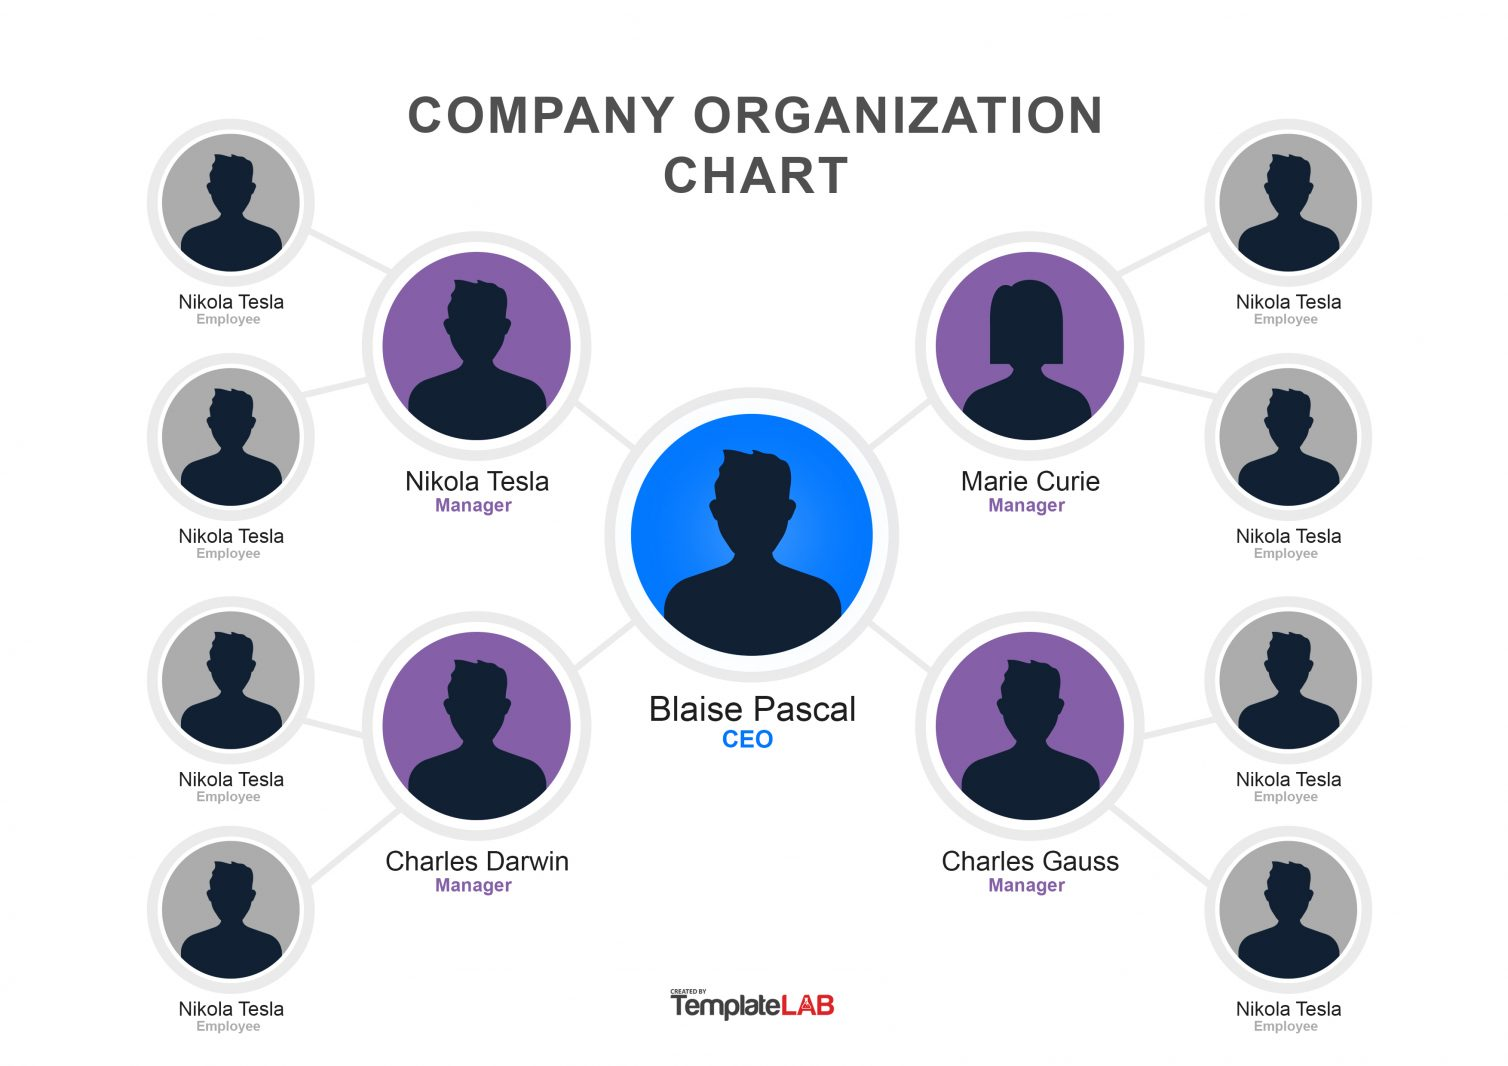 41 Organizational Chart Templates (Word, Excel, PowerPoint ...